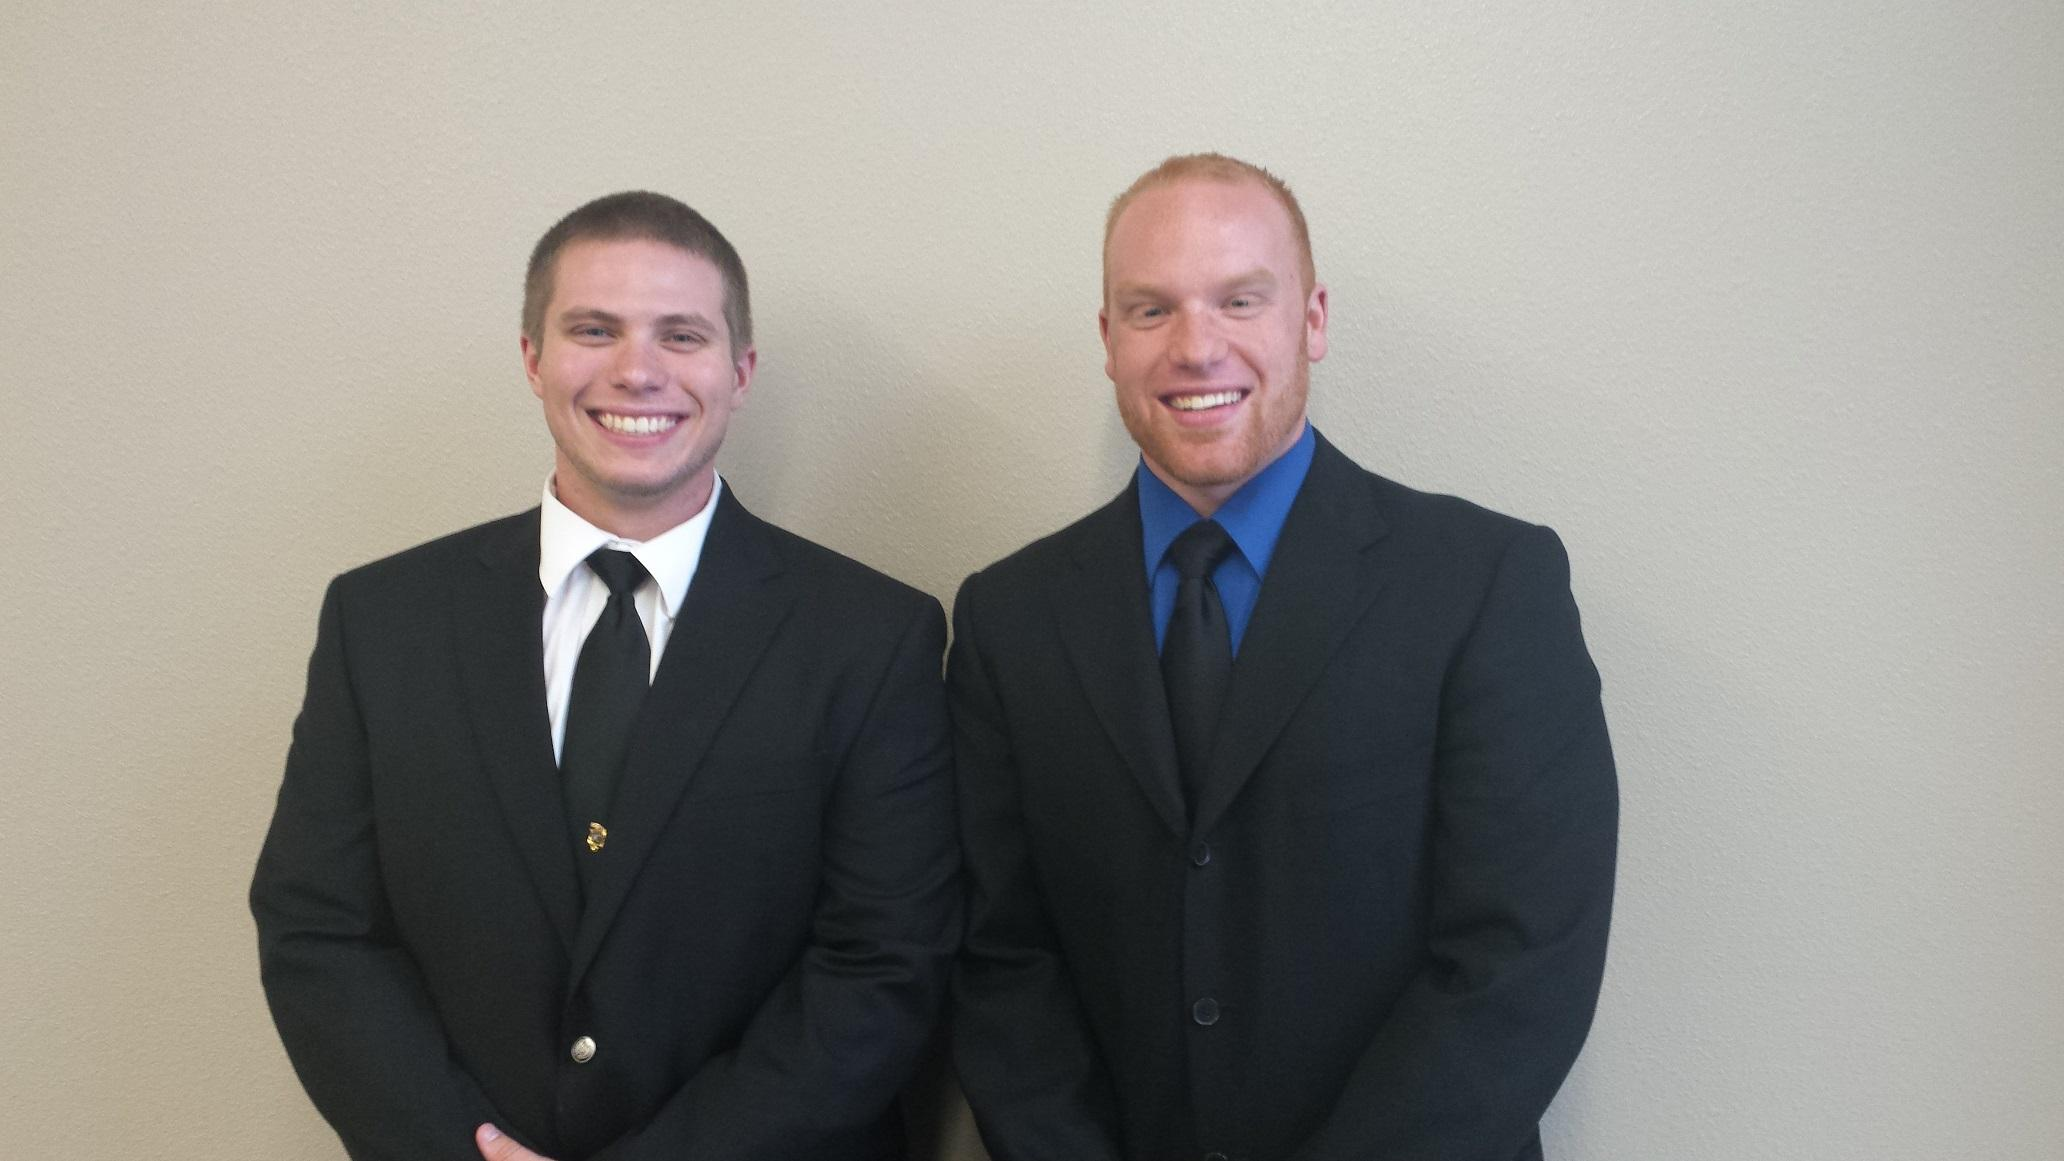 After coincidentally signing up at the same time, Joseph Van Oss, senior criminal justice major, and Cody Manders, 2015 Lakeland alum, bonded during their training at police academy, which took place at Fox Valley Technical College.